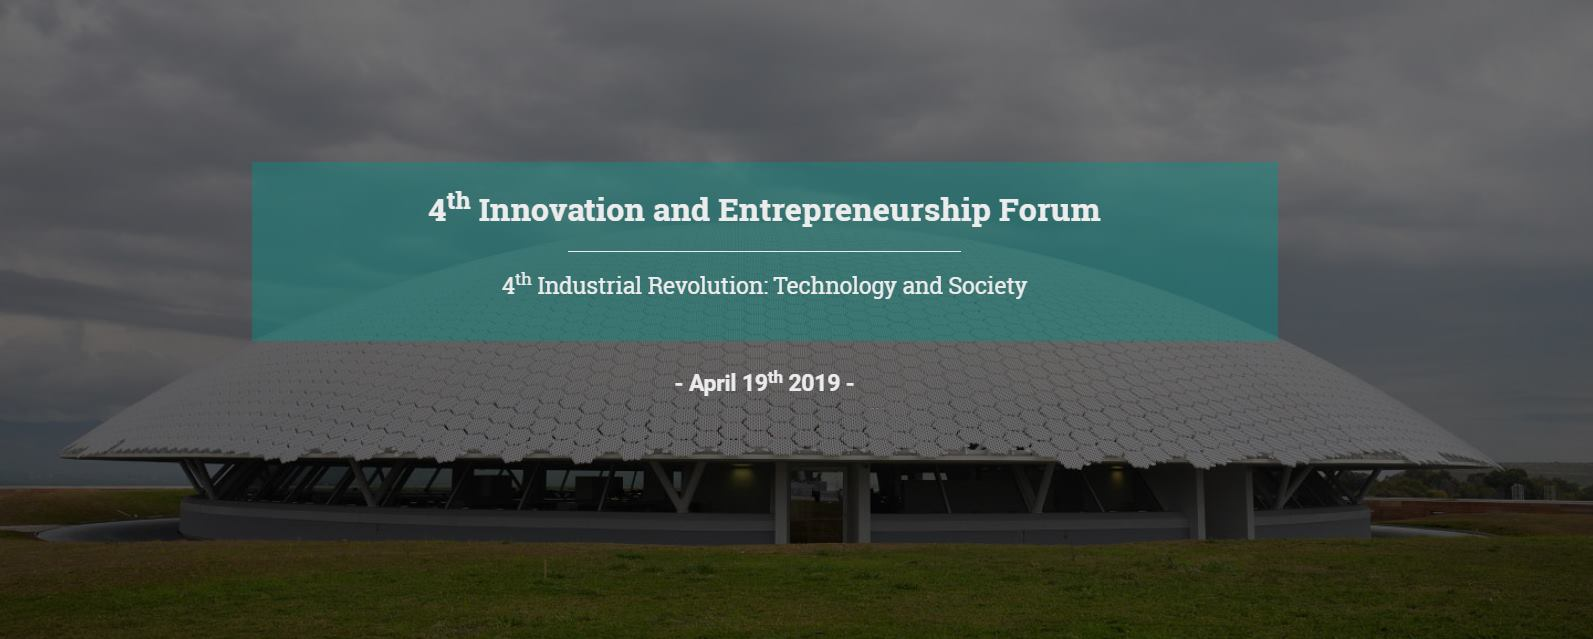 4th Innovation and Entrepreneurship Forum (IEF 2019) cyprus cyprusinno event events